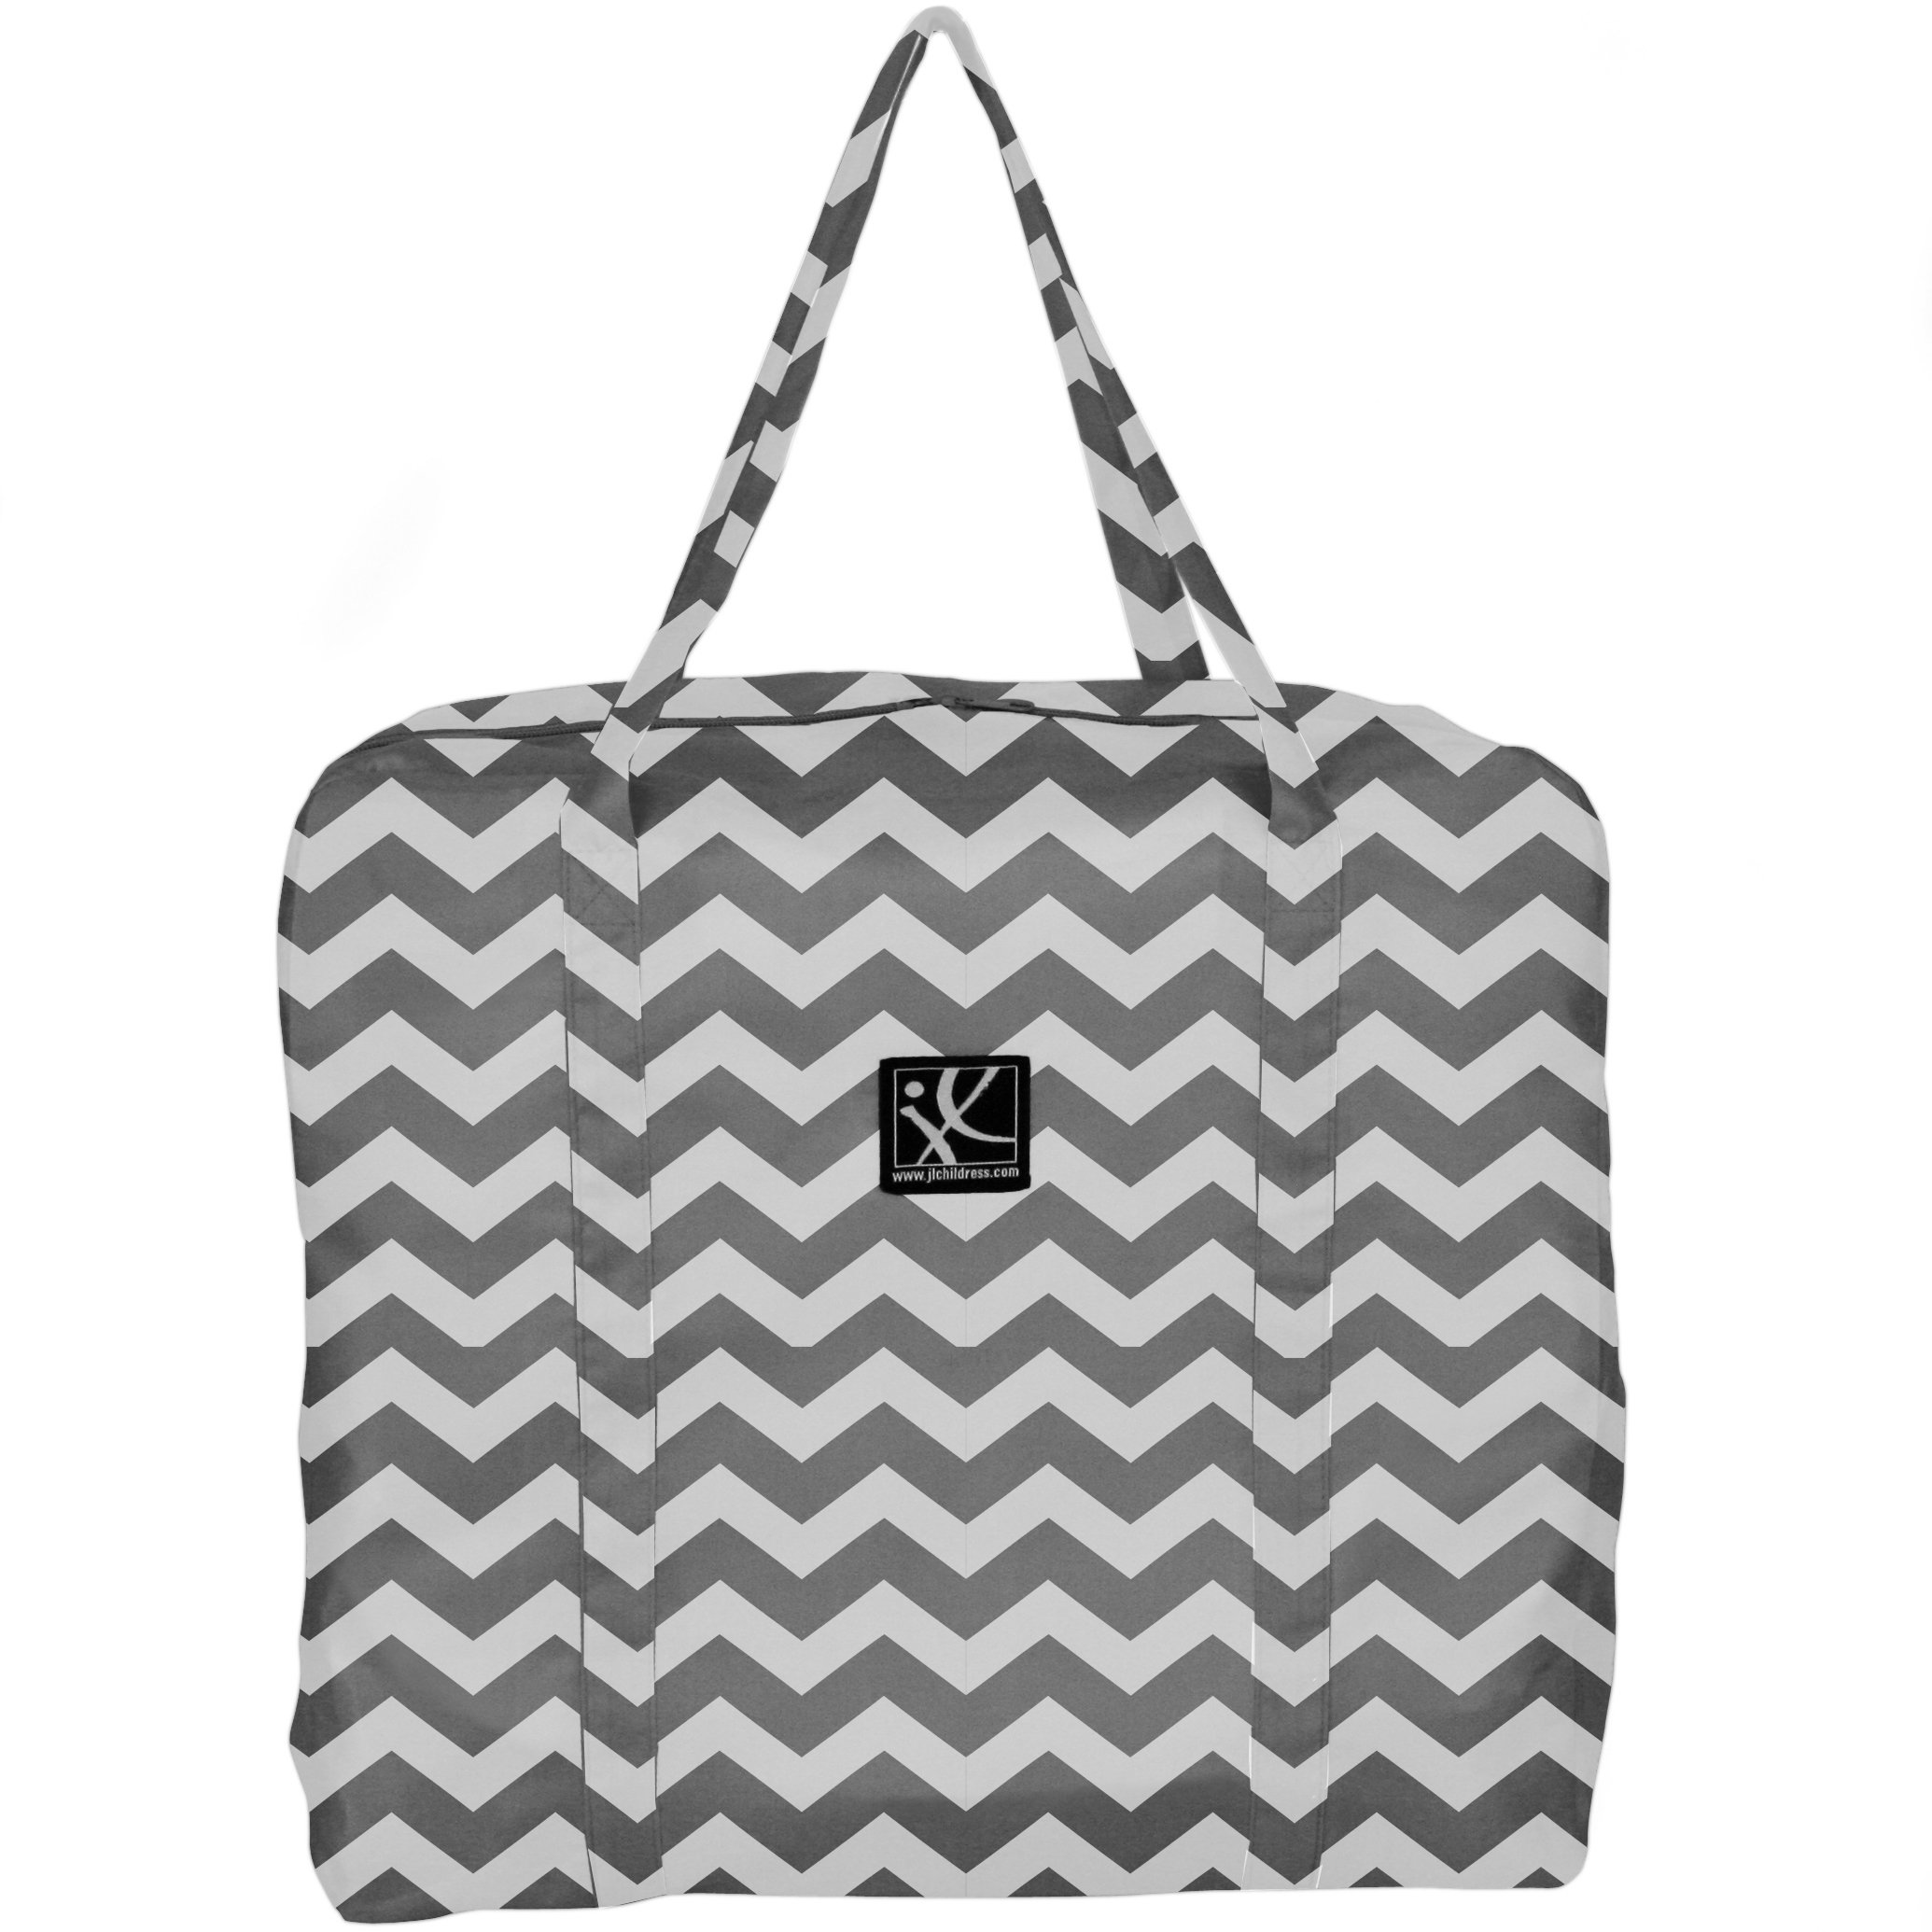 J.L. Childress Booster Go-Go Travel Bag for Backless Seats, Chevron